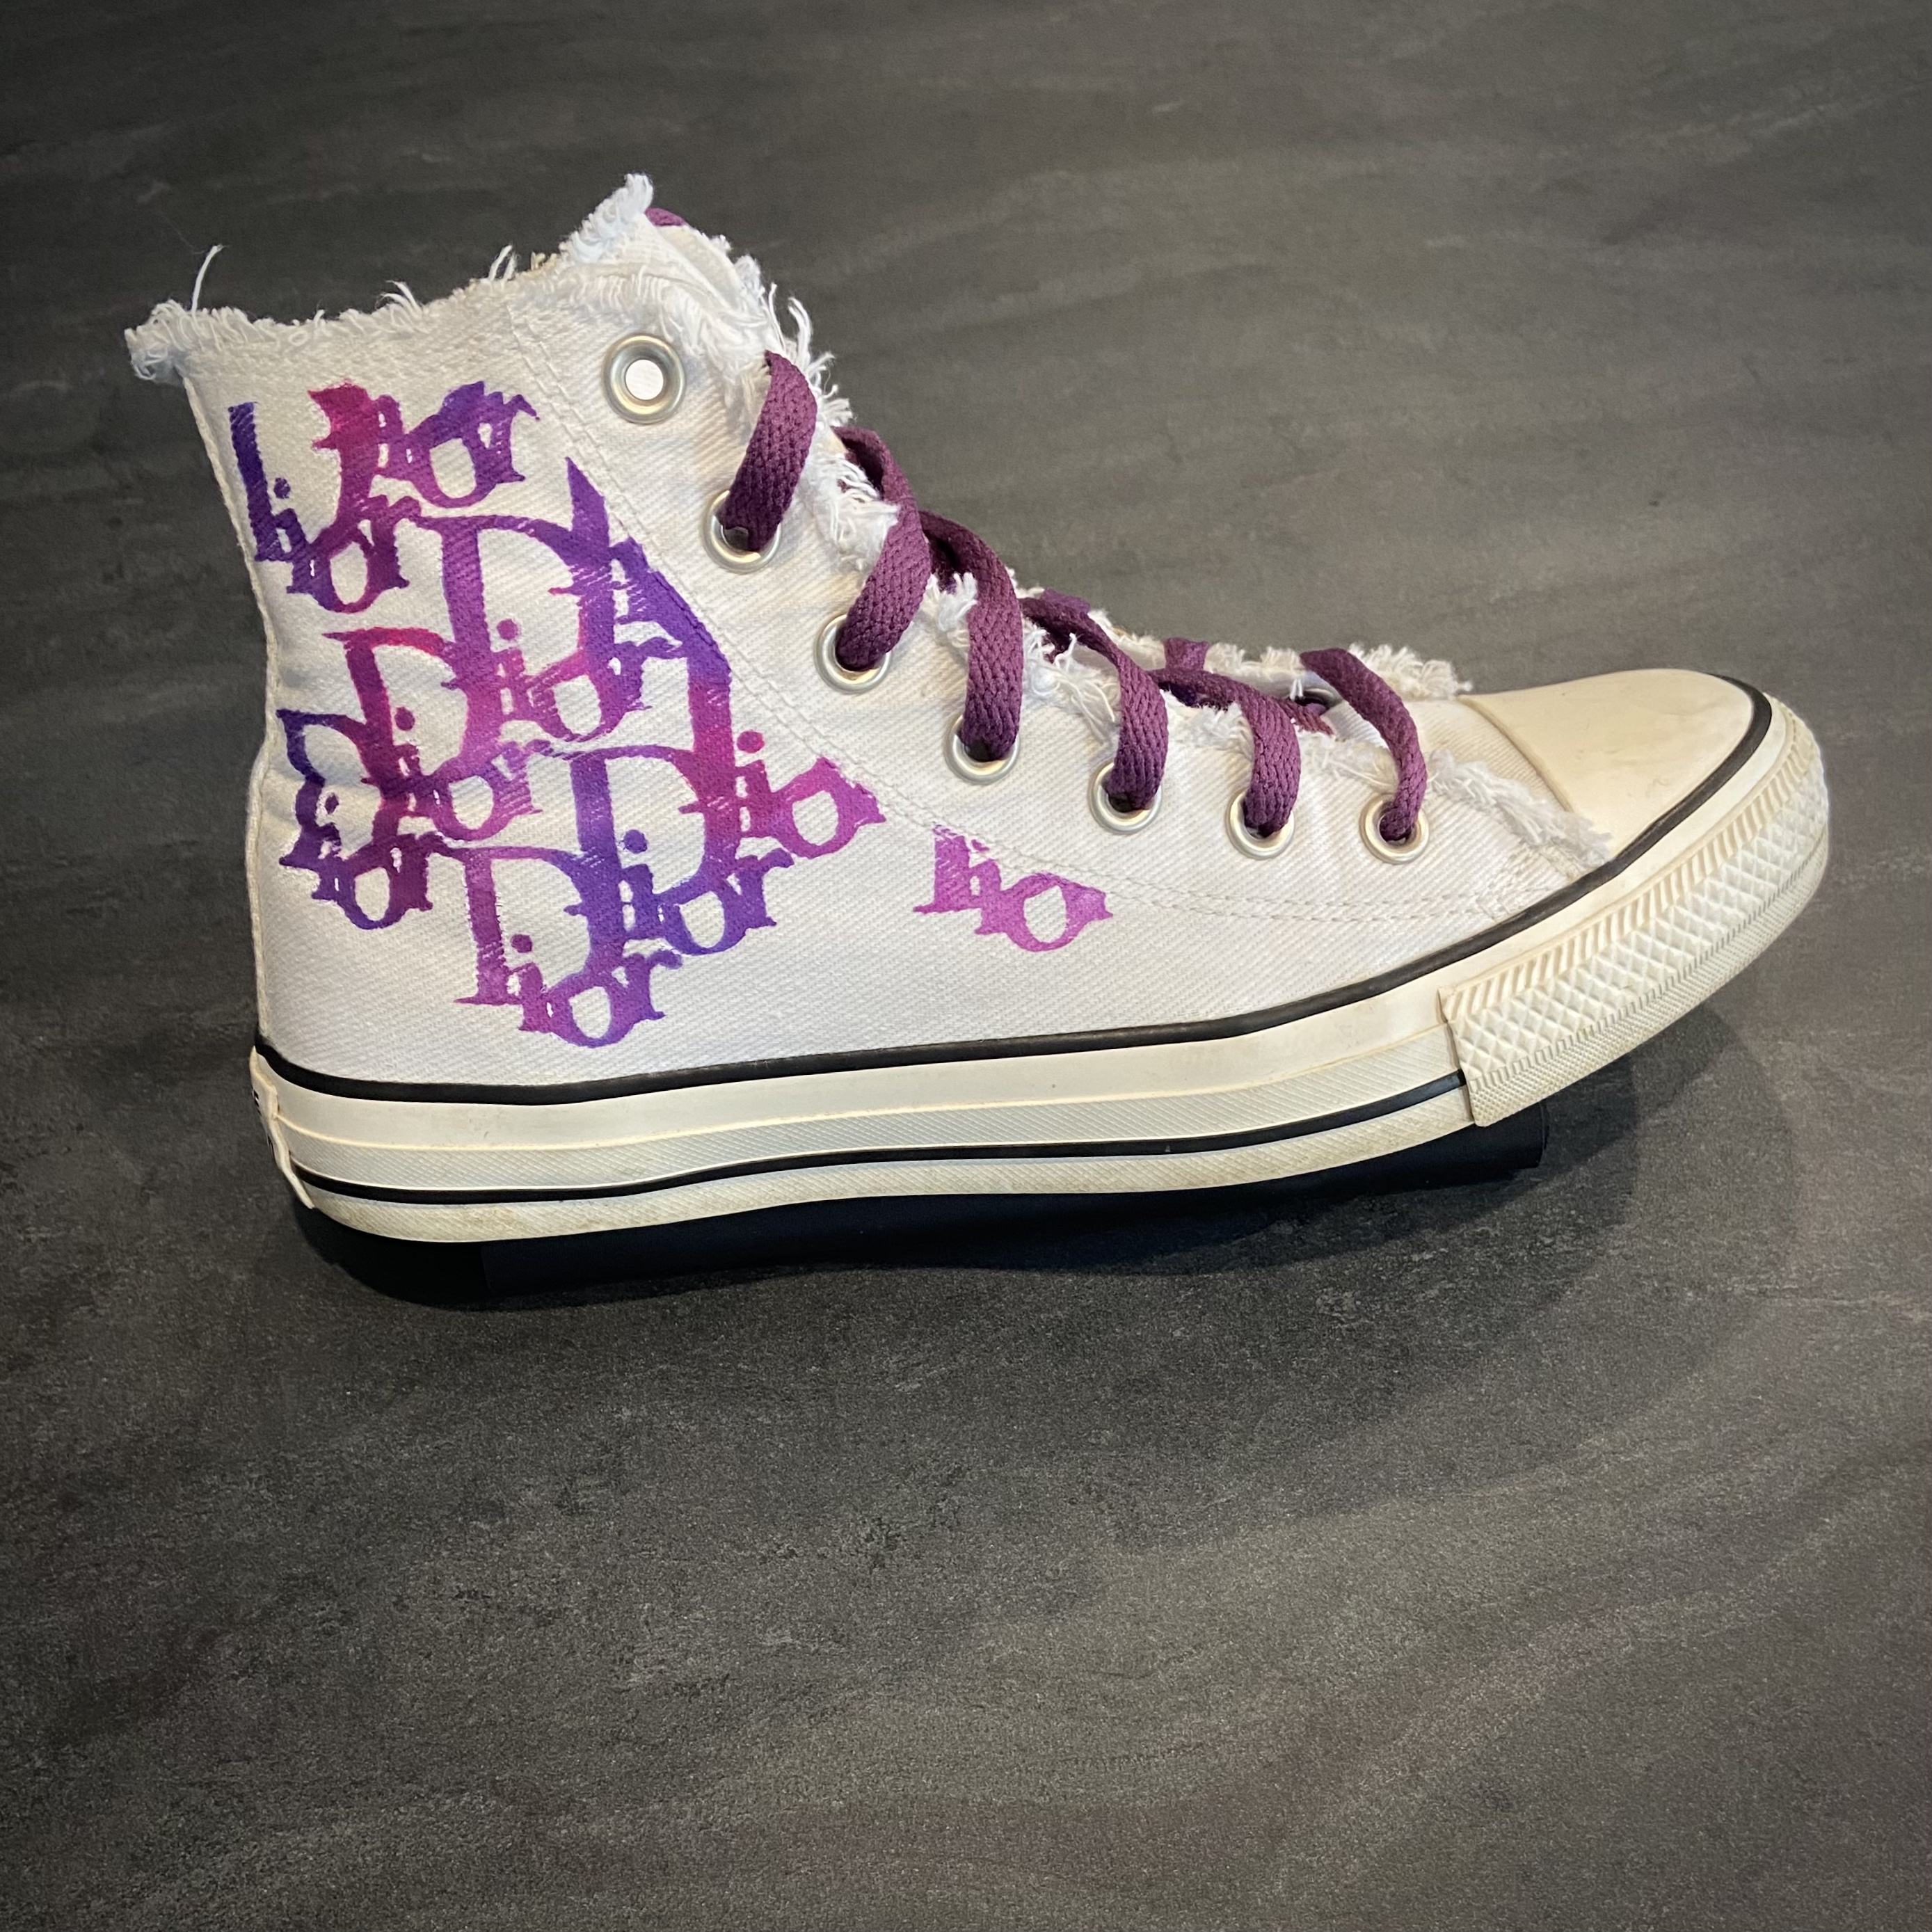 Converse painted Dior